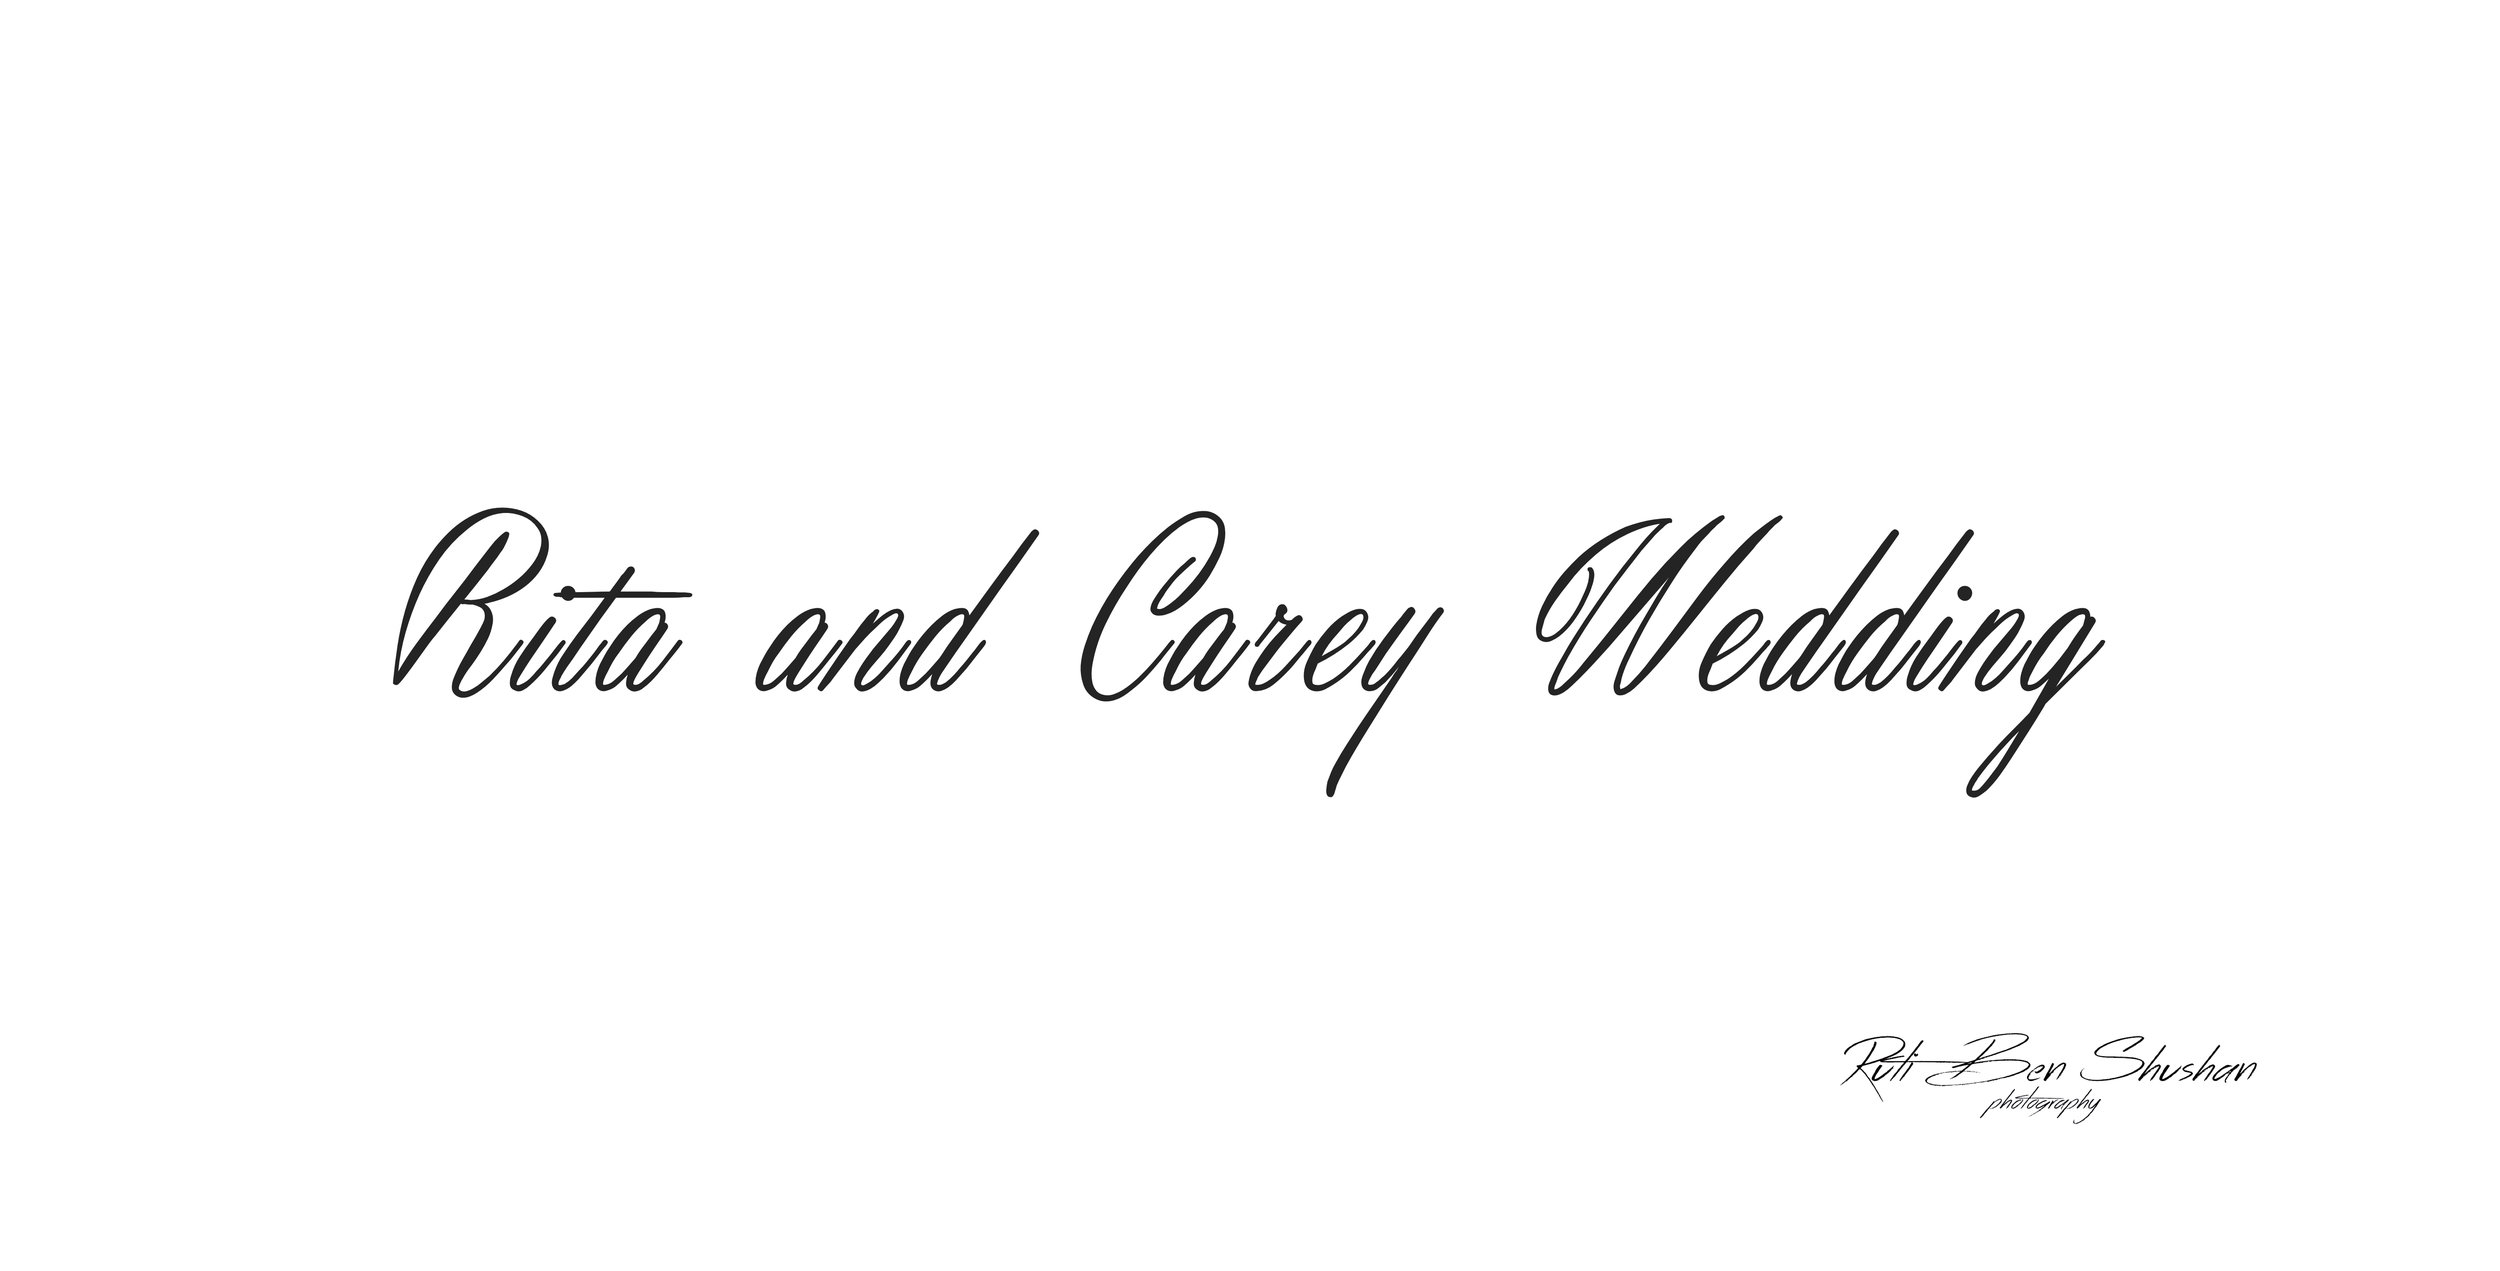 Rita_and_Carey_Wedding_01.jpg